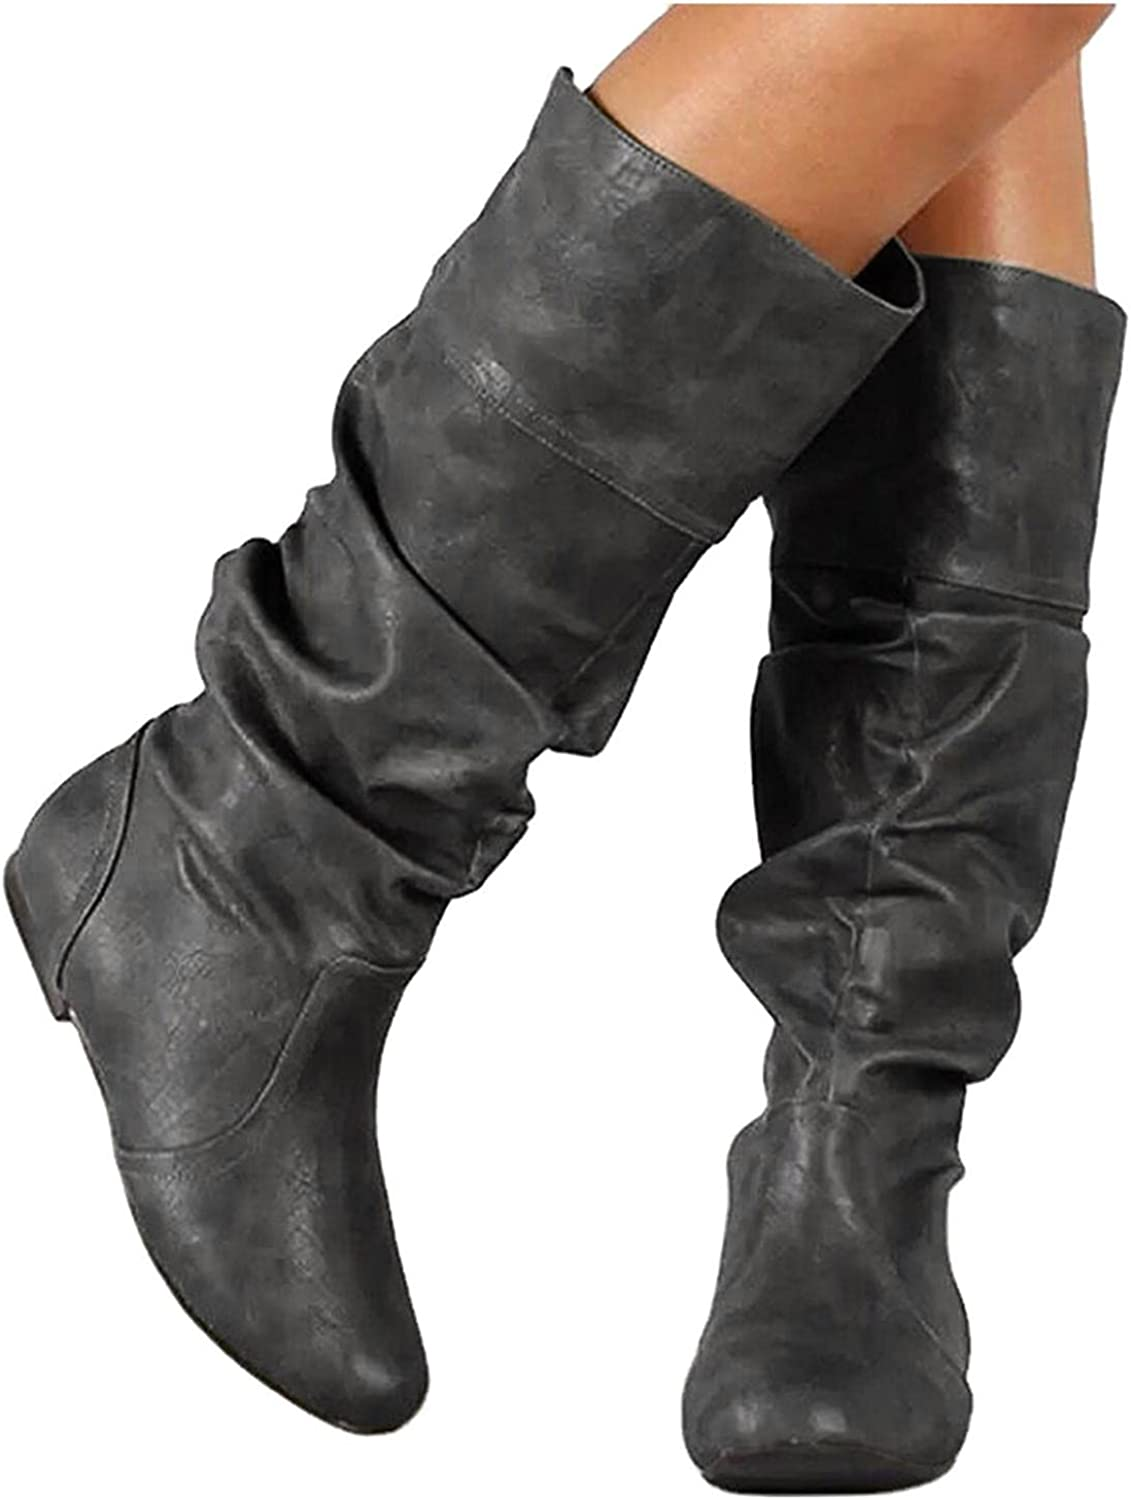 Price reduction Knee High Boots for Women Great interest Womens Rider High-Top Bo Winter Autumn